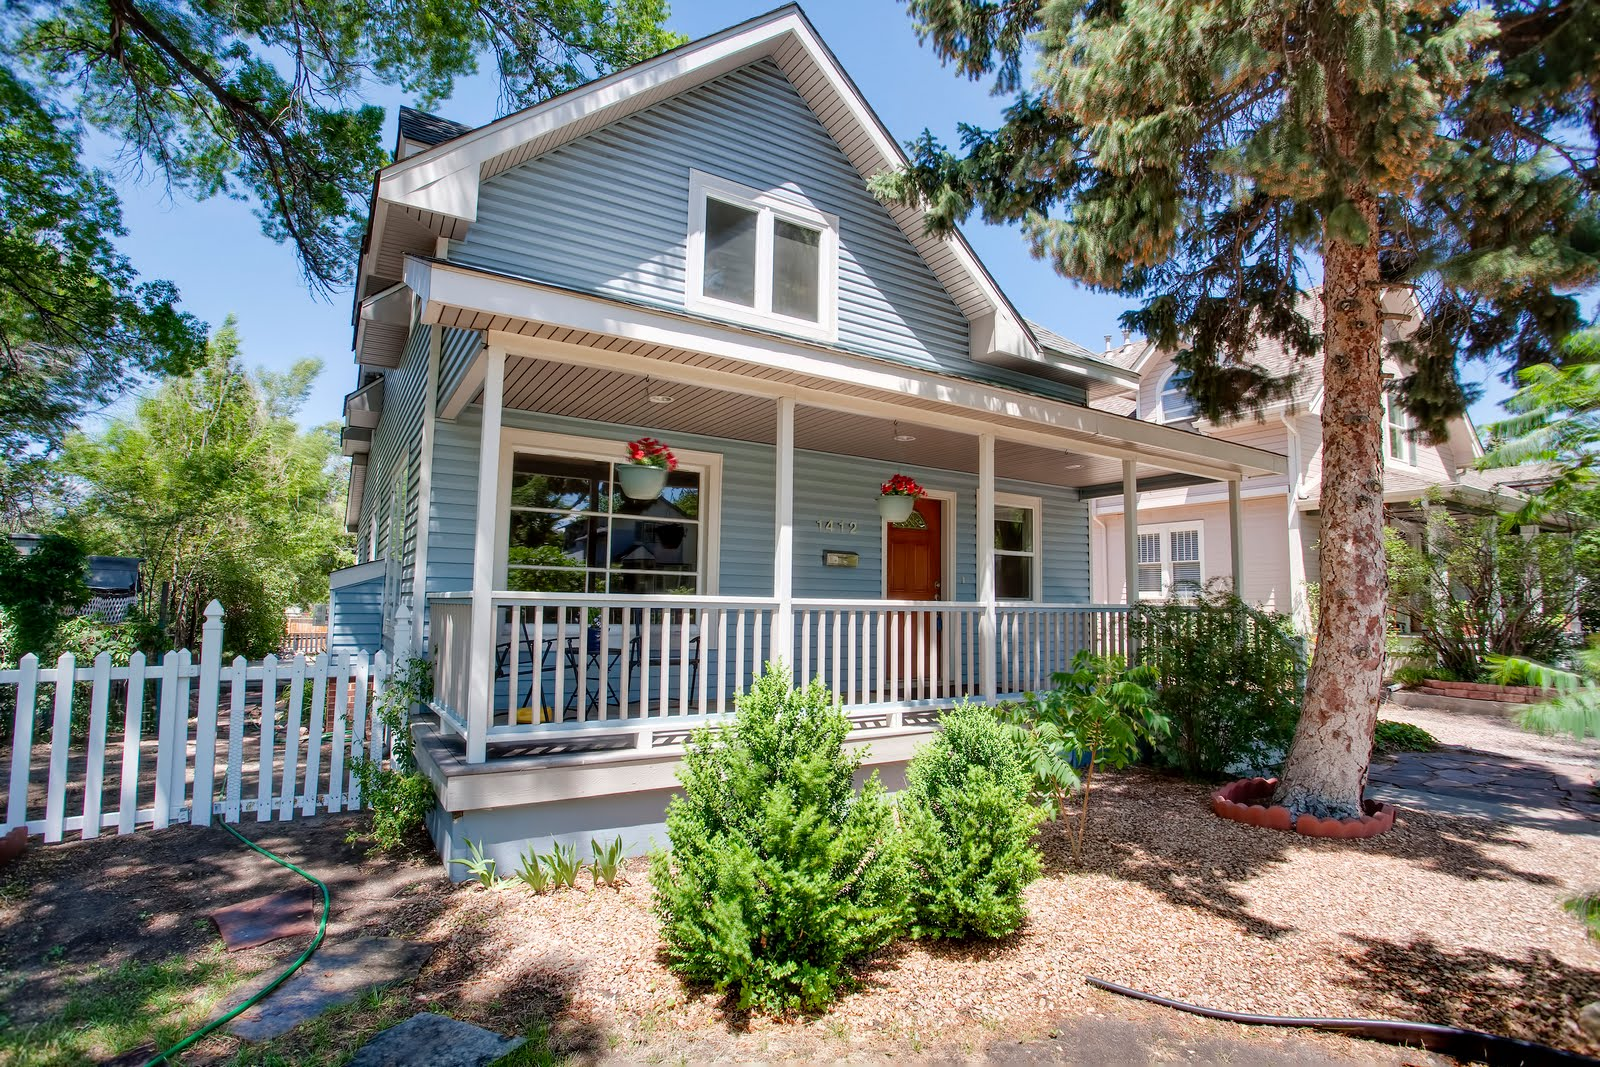 colorado springs real estate updated home for sale in downtown colorado springs